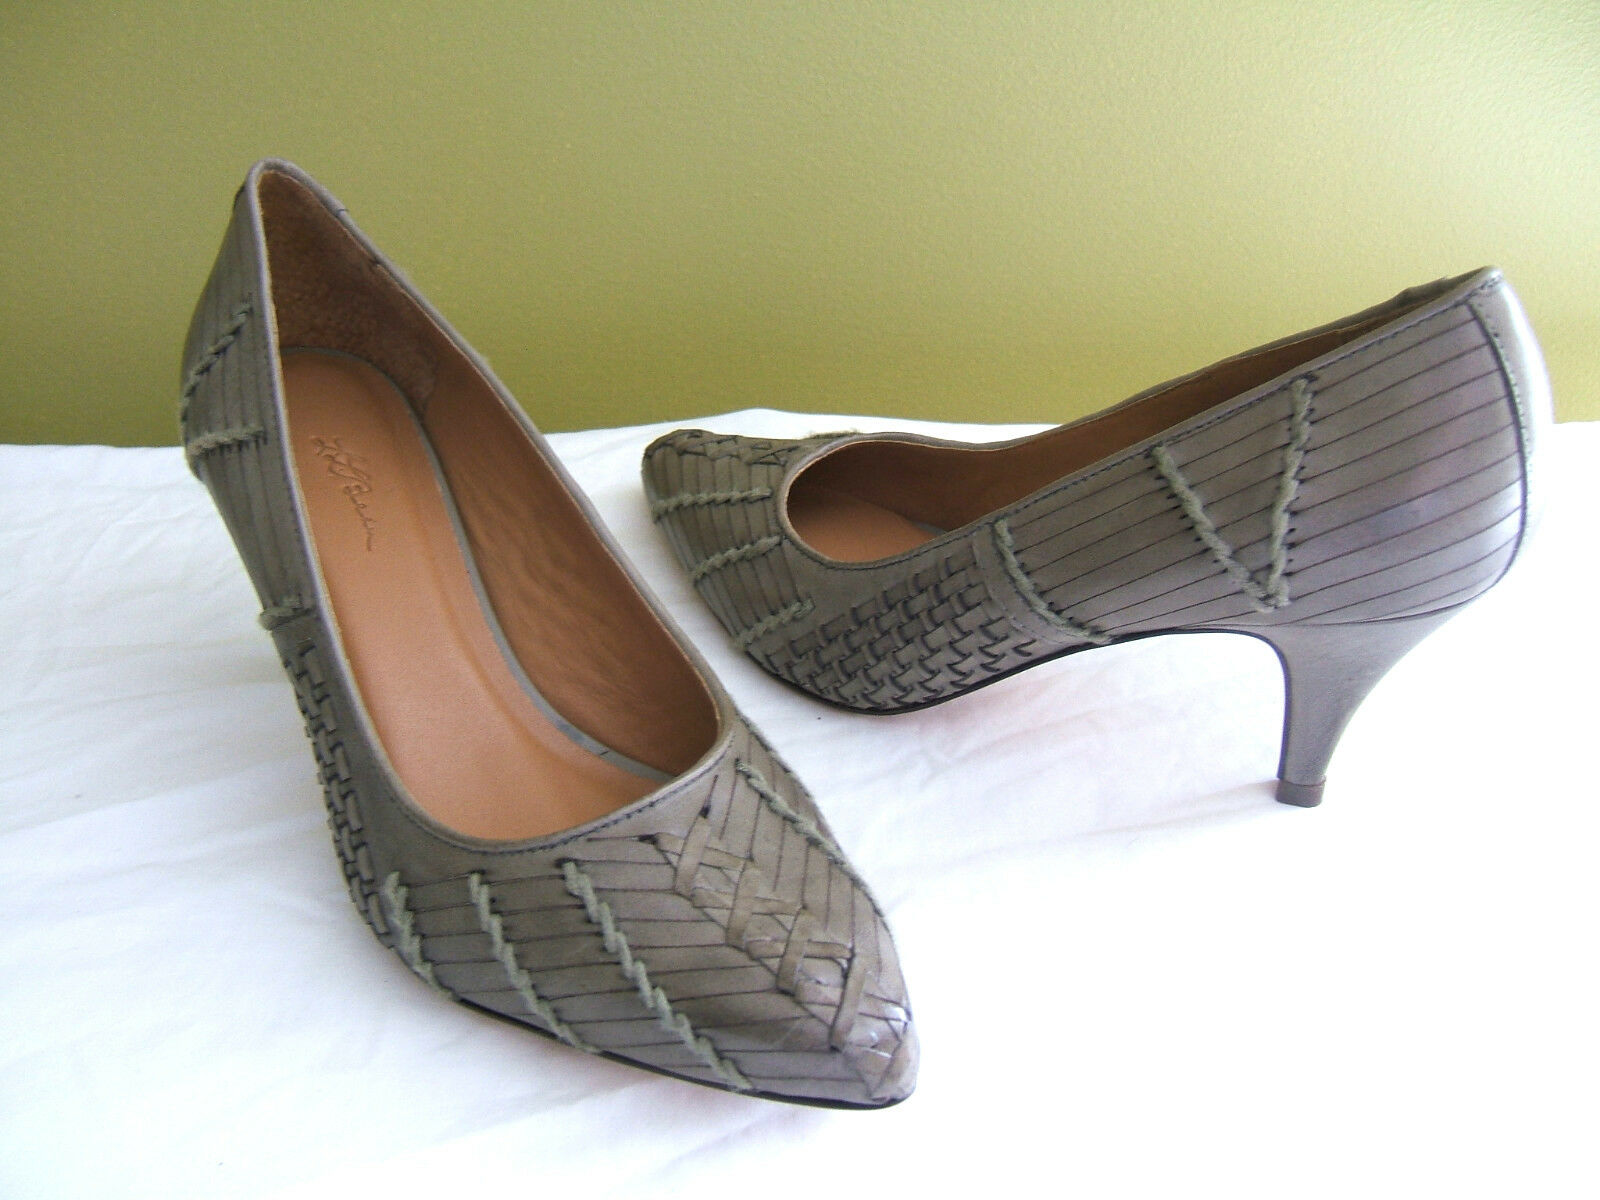 NEW! L.L. Bean Signature Woven Woven Signature Pumps Gorgeous Leather Olive Green Heels 10M $179 9320cf